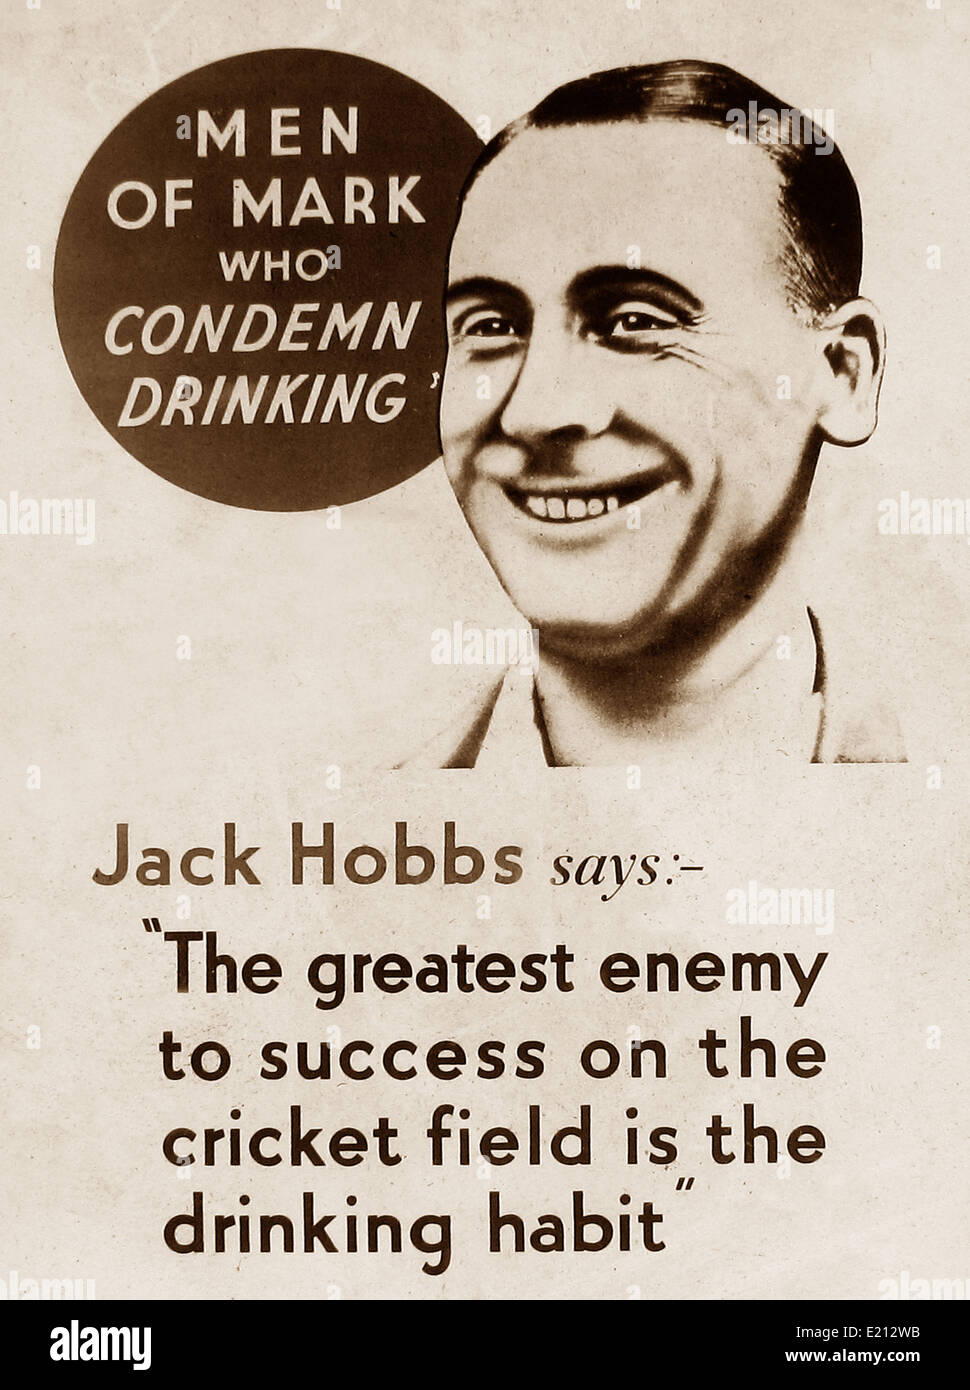 Temperance message Jack Hobbs early 1900s - Stock Image